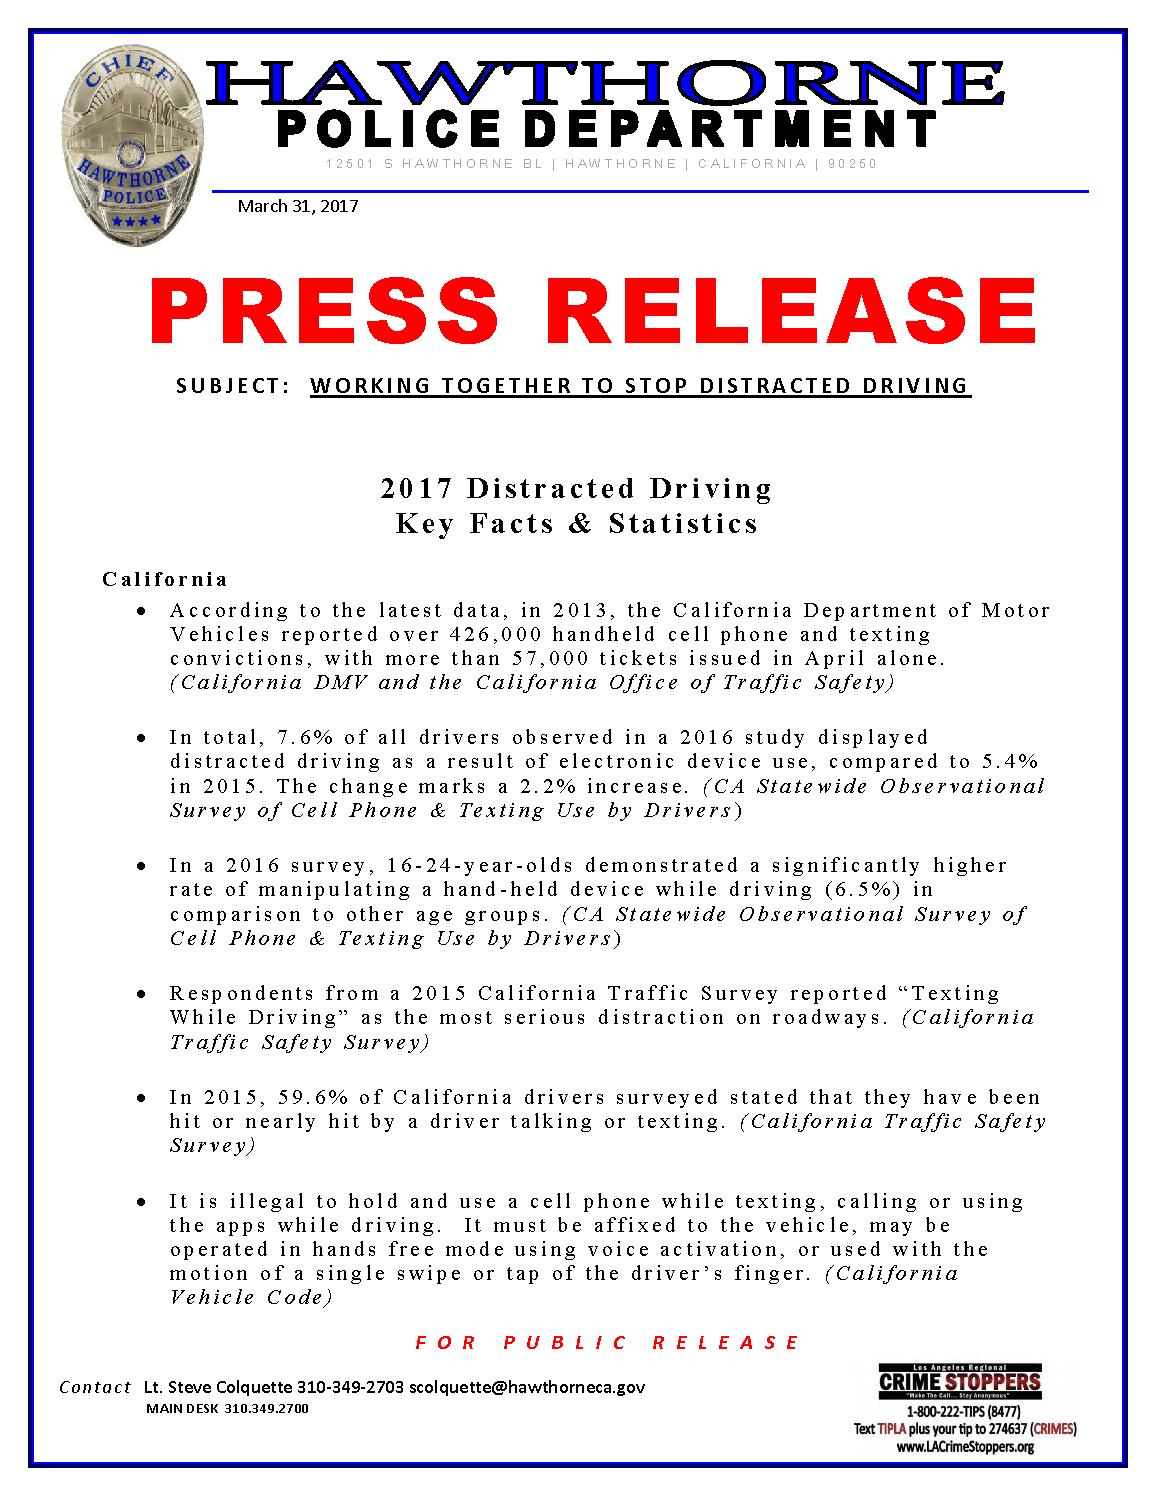 Distracted Driver Stats and Facts Press Release_Page_1.png